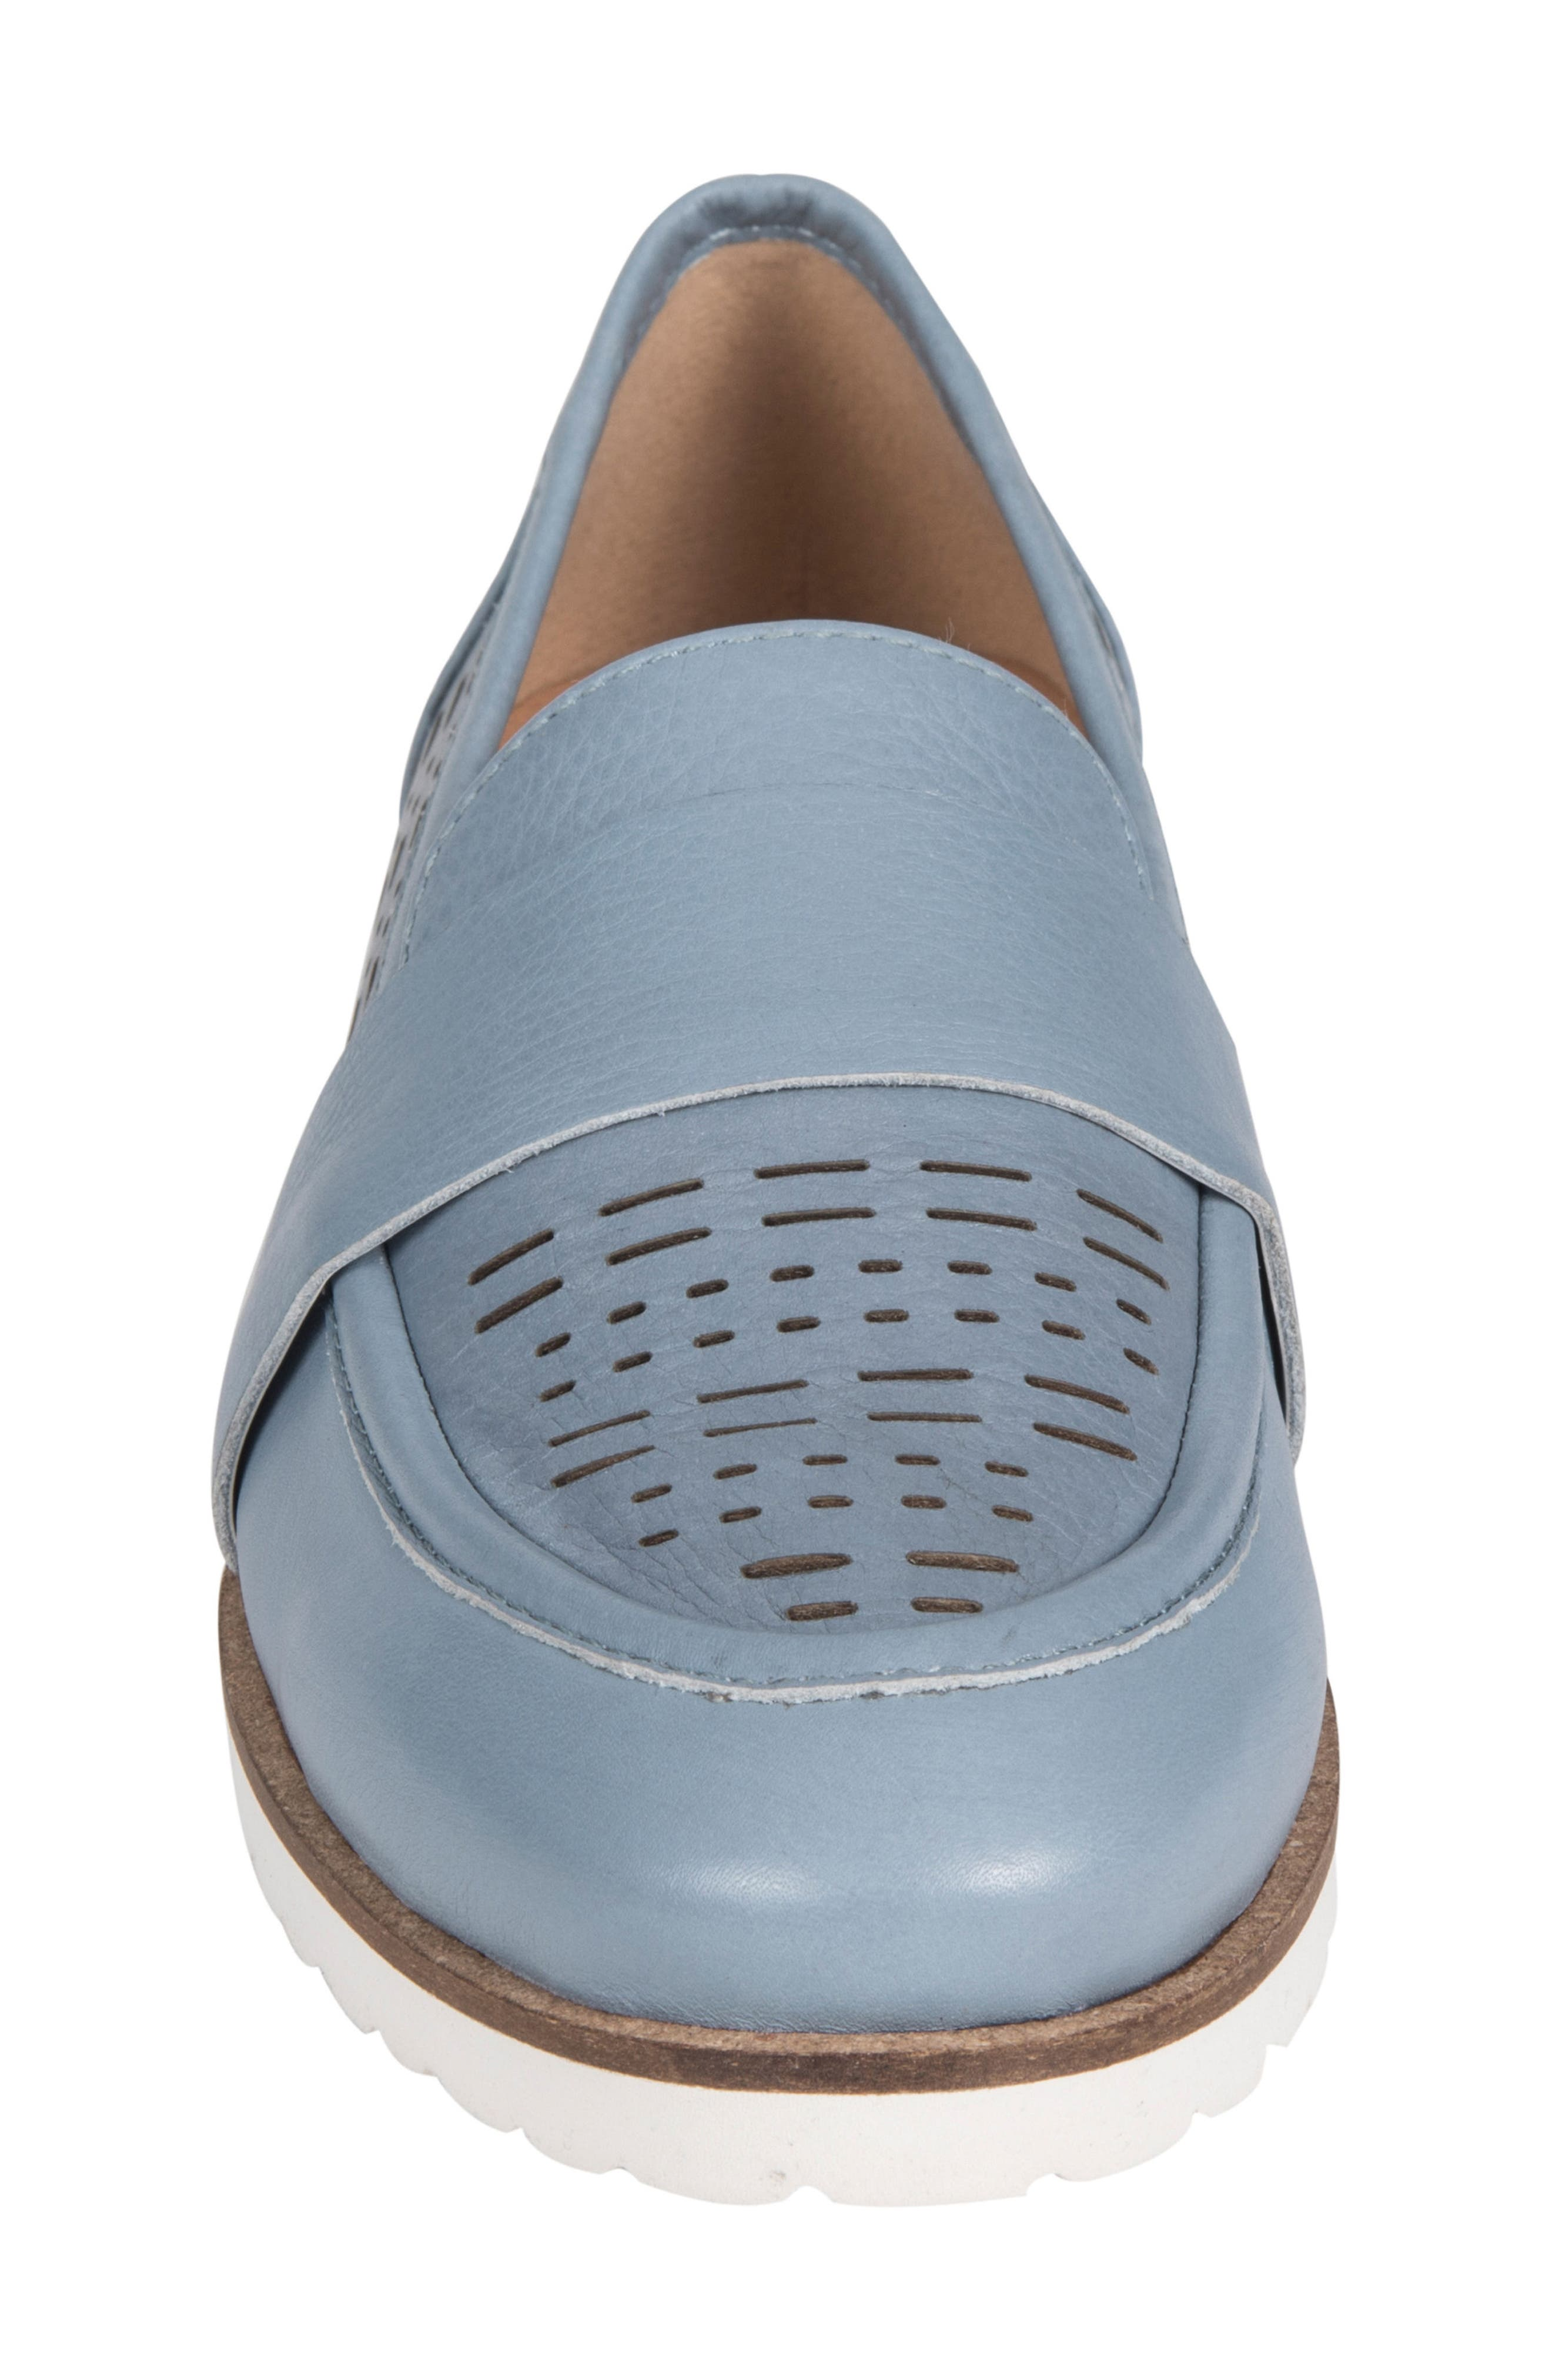 Masio Loafer,                             Alternate thumbnail 4, color,                             Blue Leather